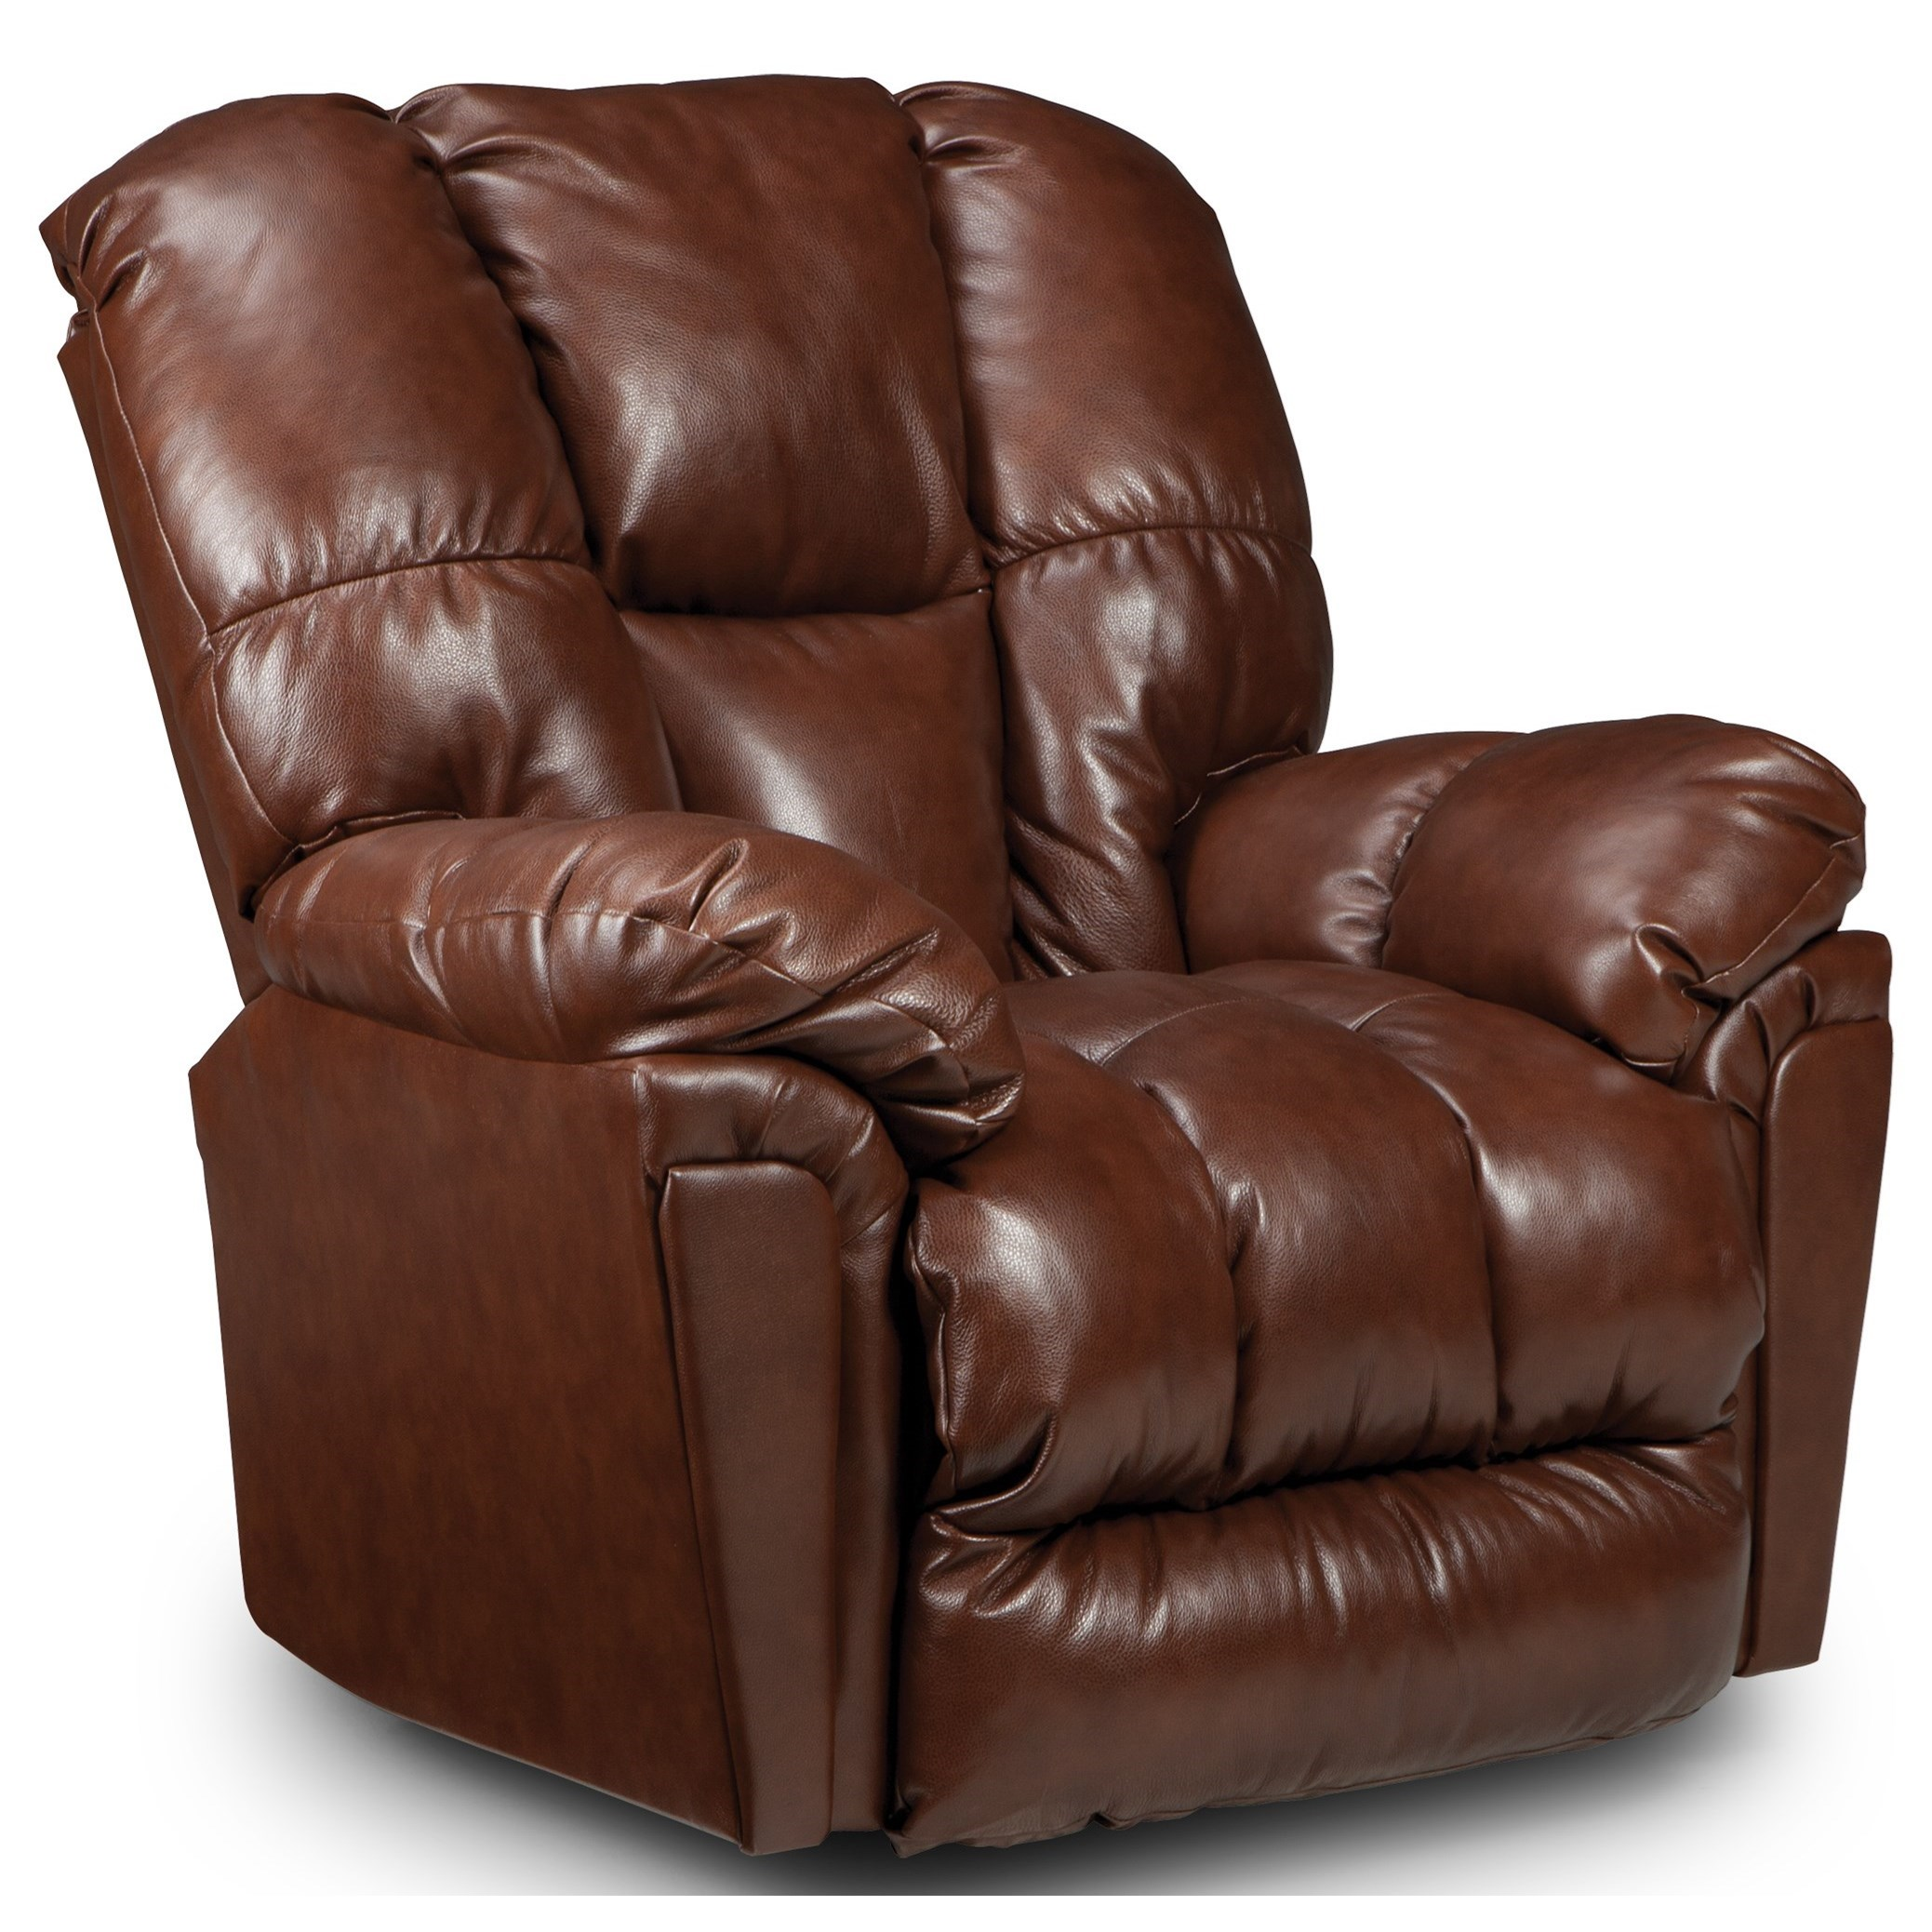 Best Home Furnishings Lucas Swivel Rocker Recliner - Item Number: 6M59LU 01